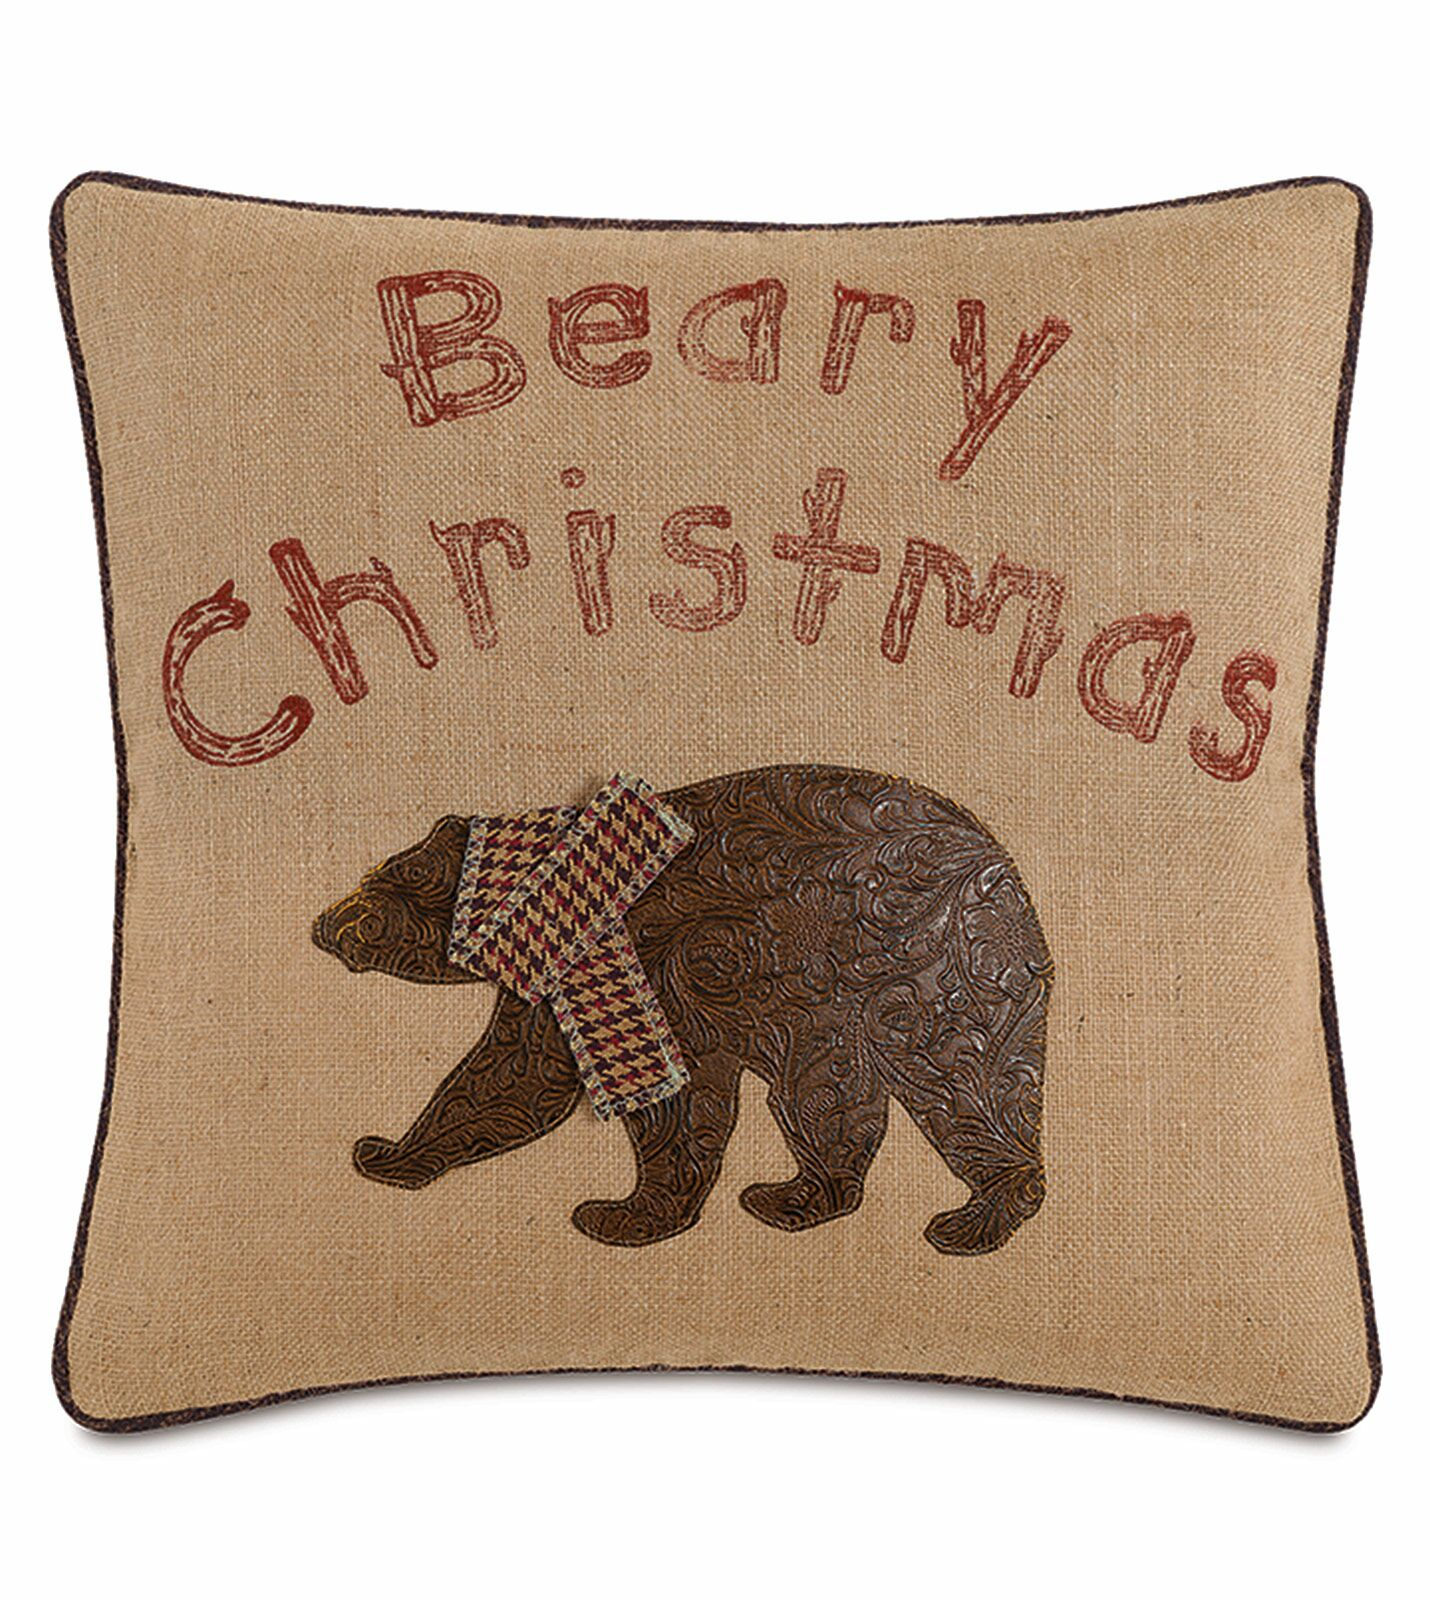 Studio 773 Lovely Bear Throw Pillow